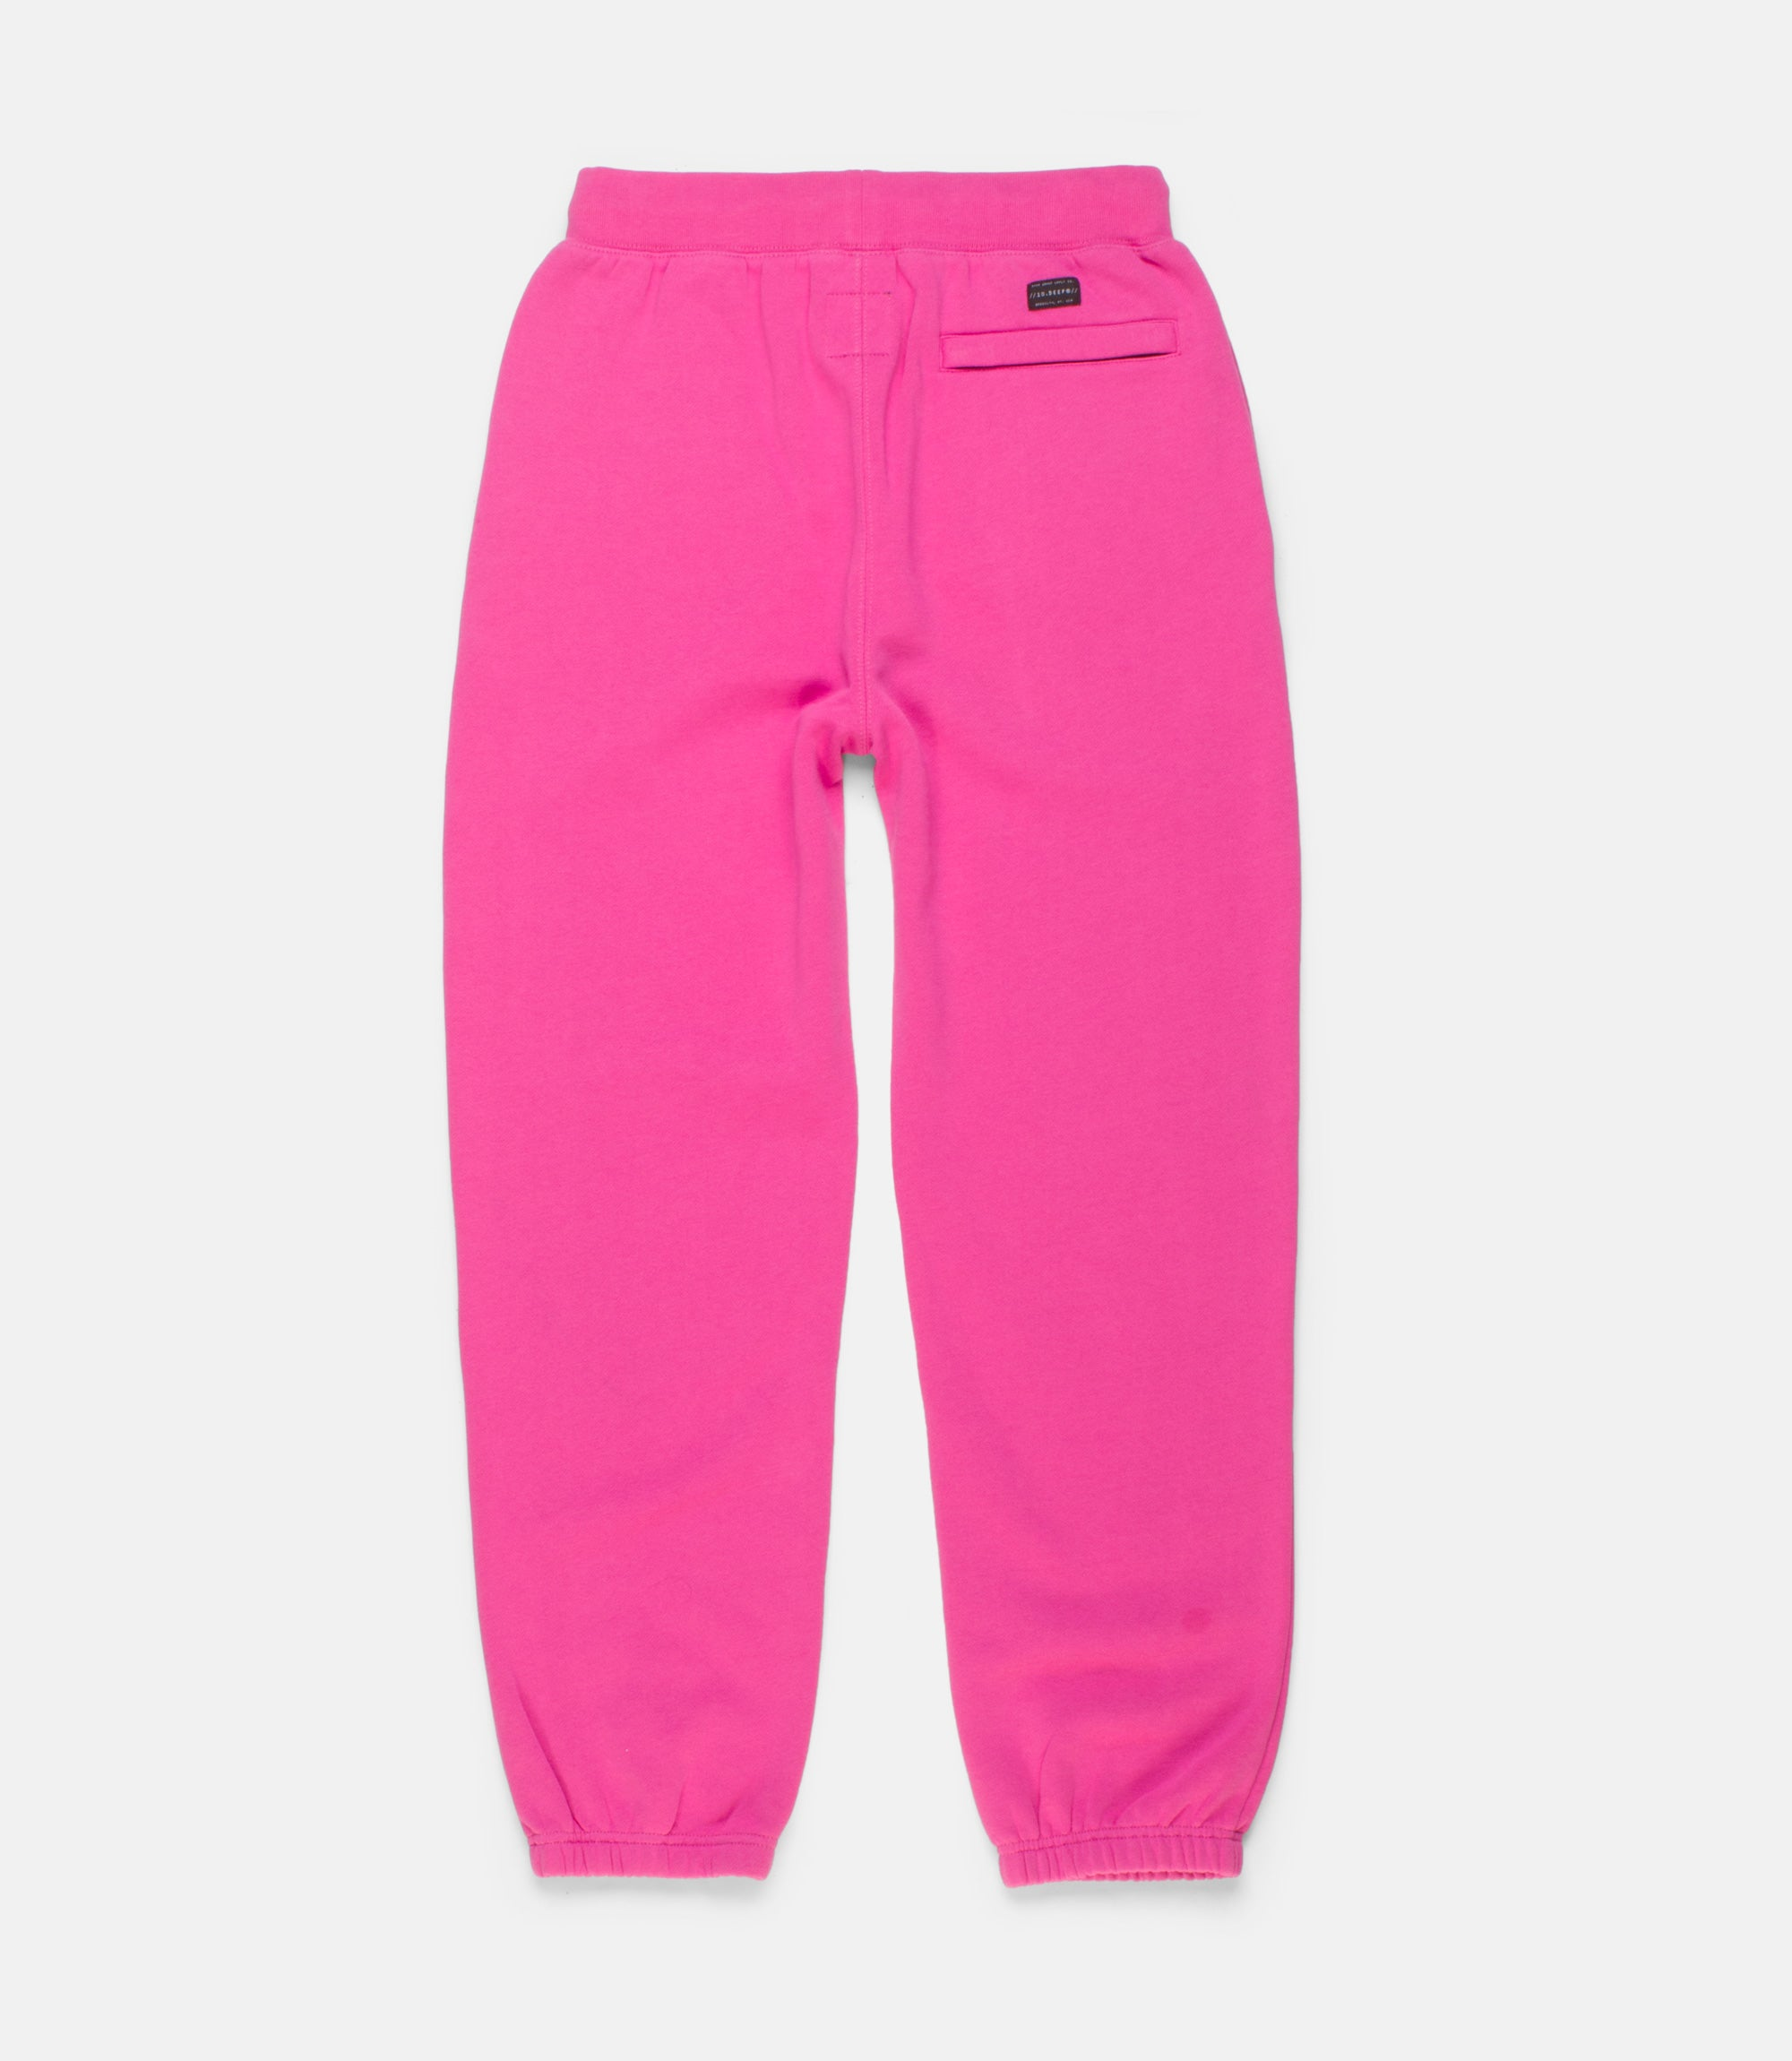 10Deep - Sound & Fury Men's Sweatpants, Pink - The Giant Peach